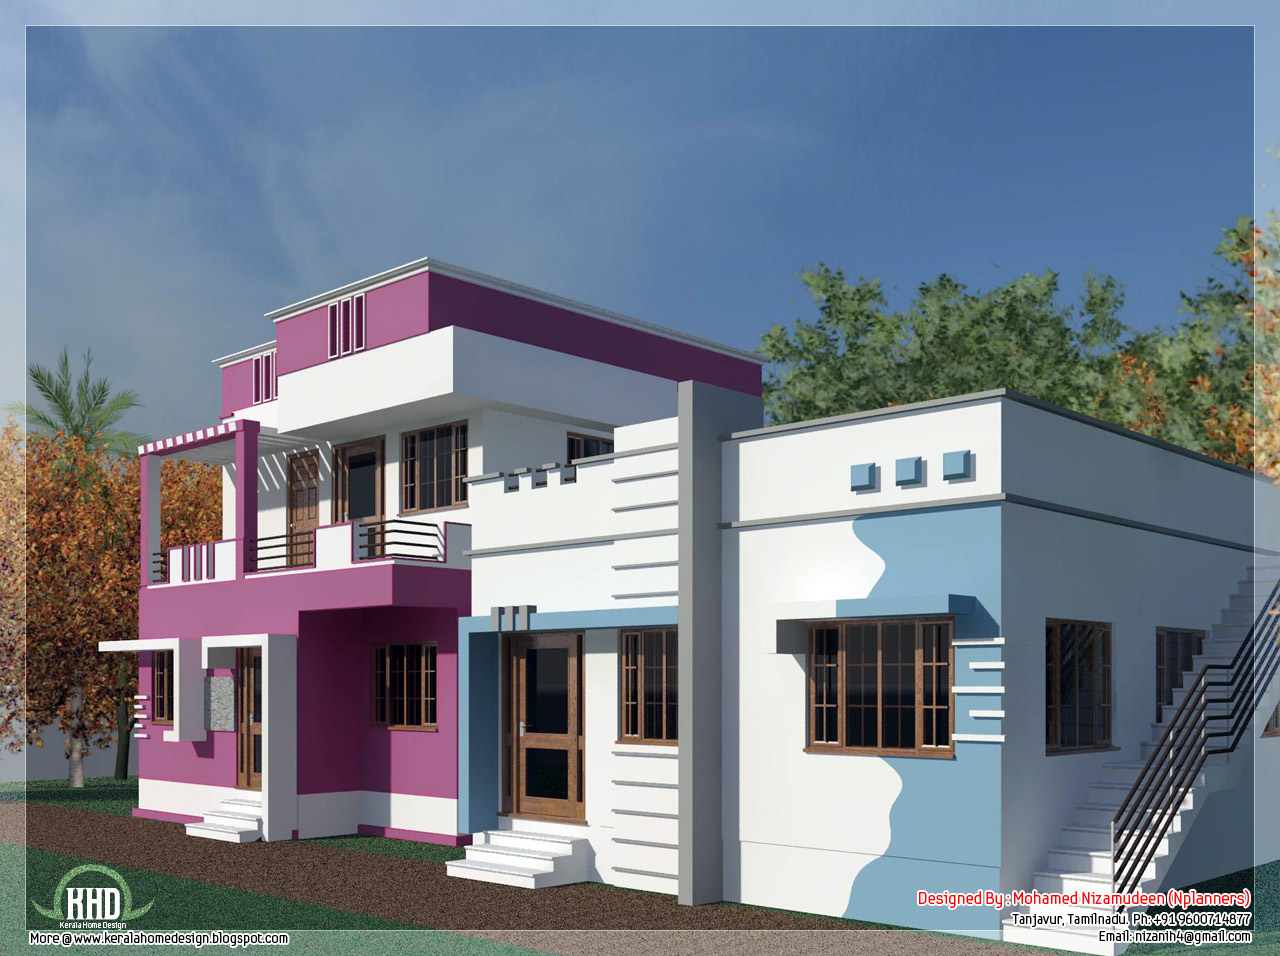 tamilnadu model home desgin in 3000 sq.feet - kerala home design